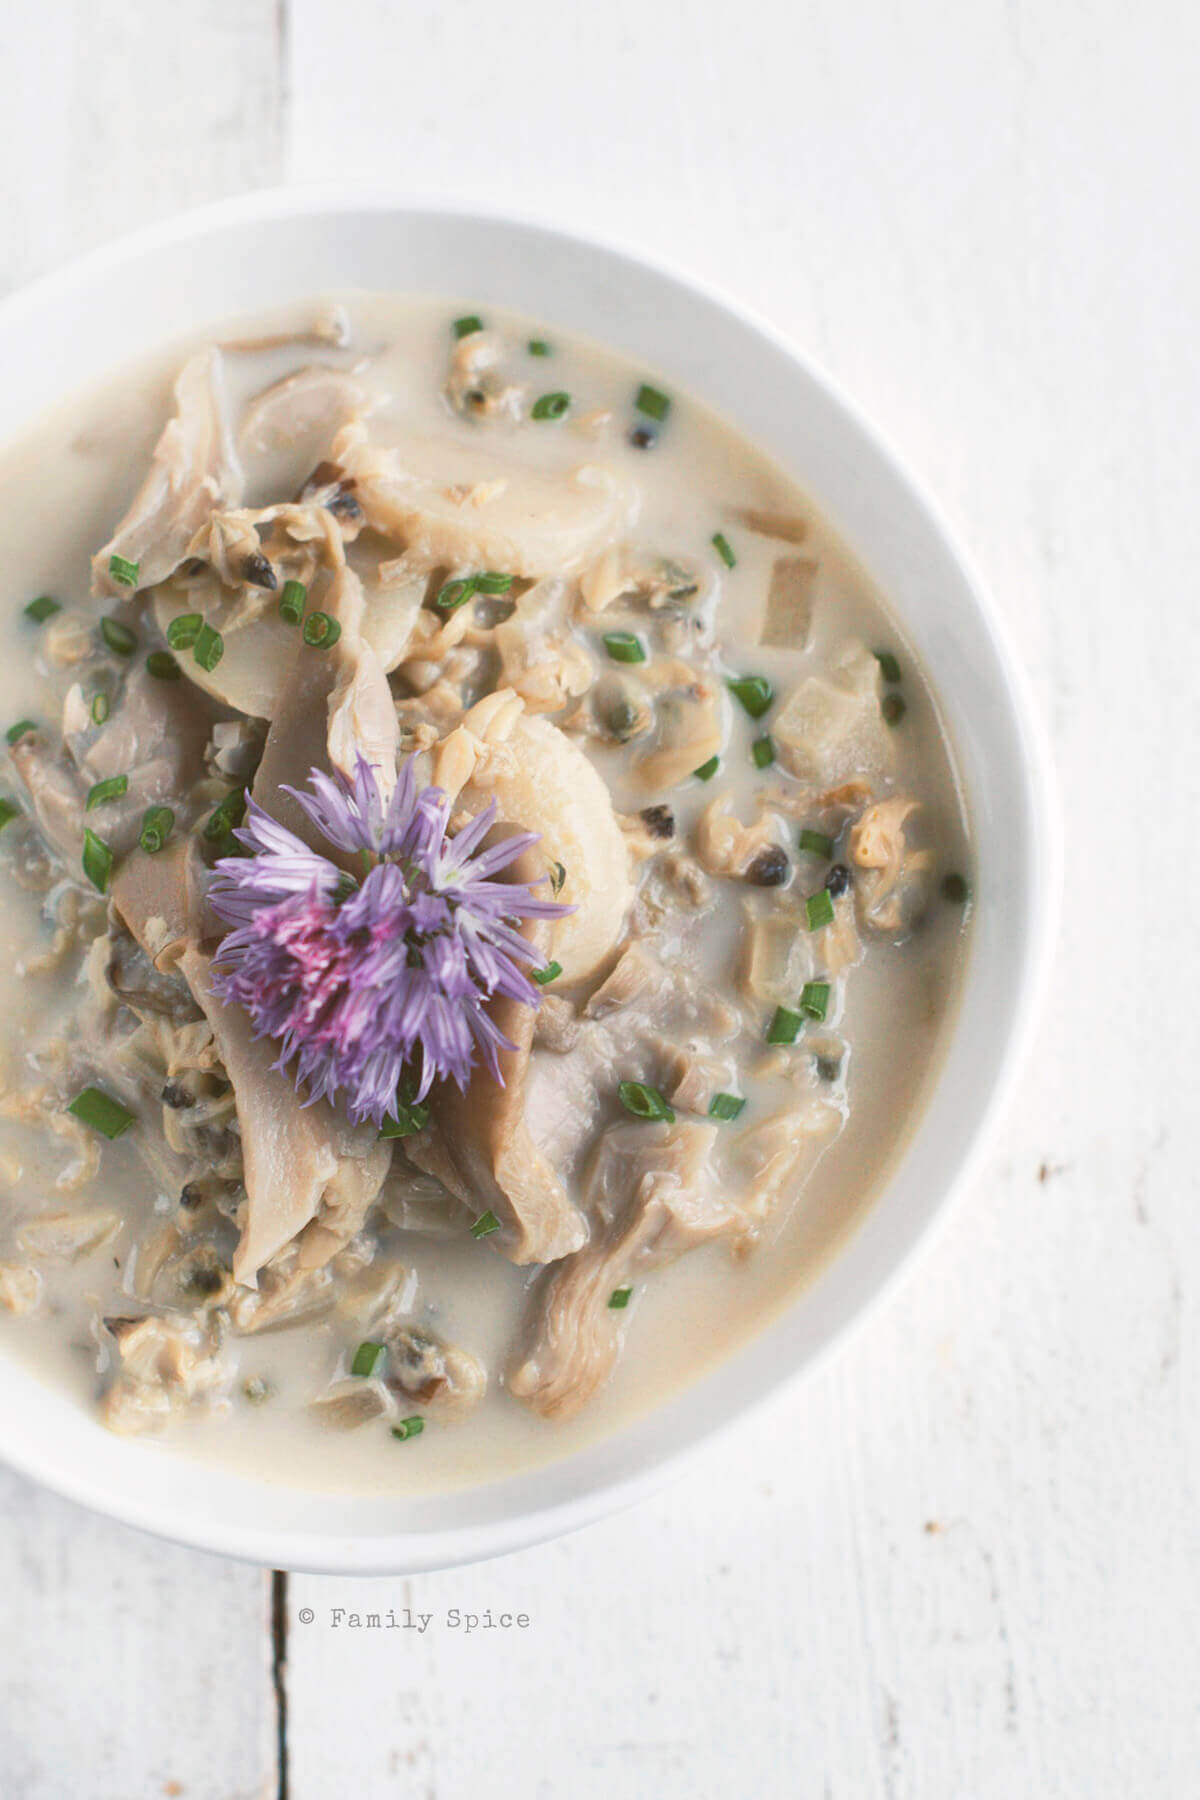 Overhead shot of a white bowl filled with asian clam chowder topped with a chive flower